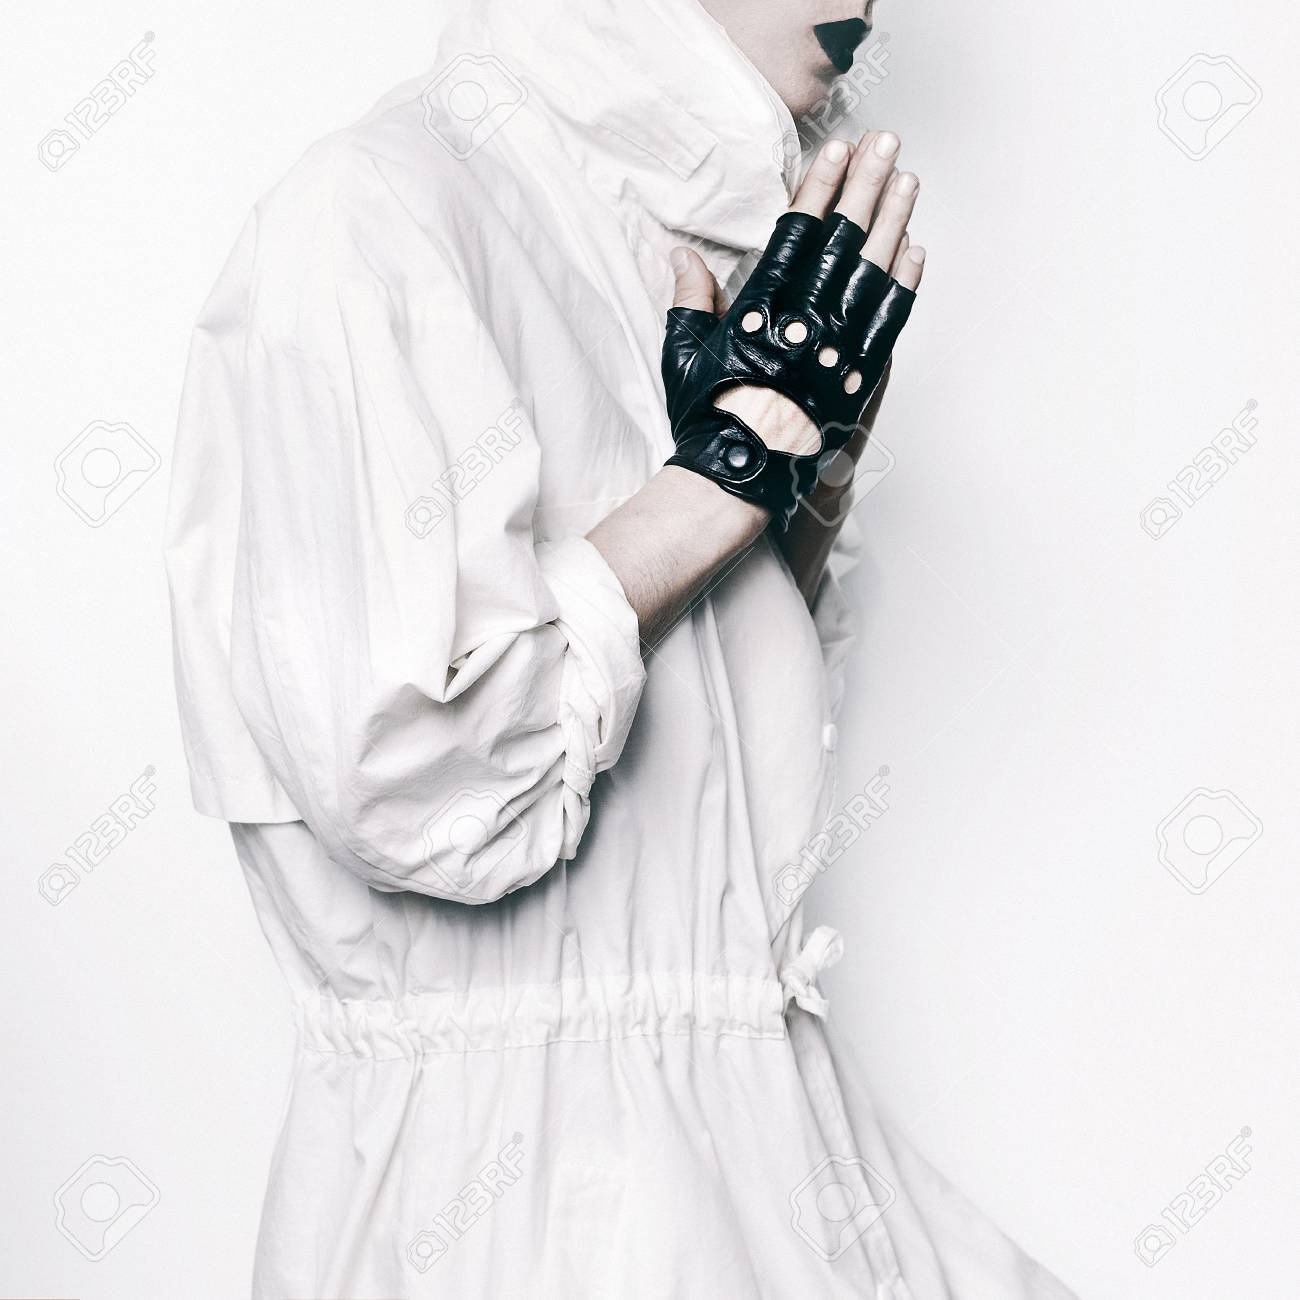 Stock photo trend hipster model swag girl minimal style trendy black and white outfit leather gloves stylish makeup fashion religion